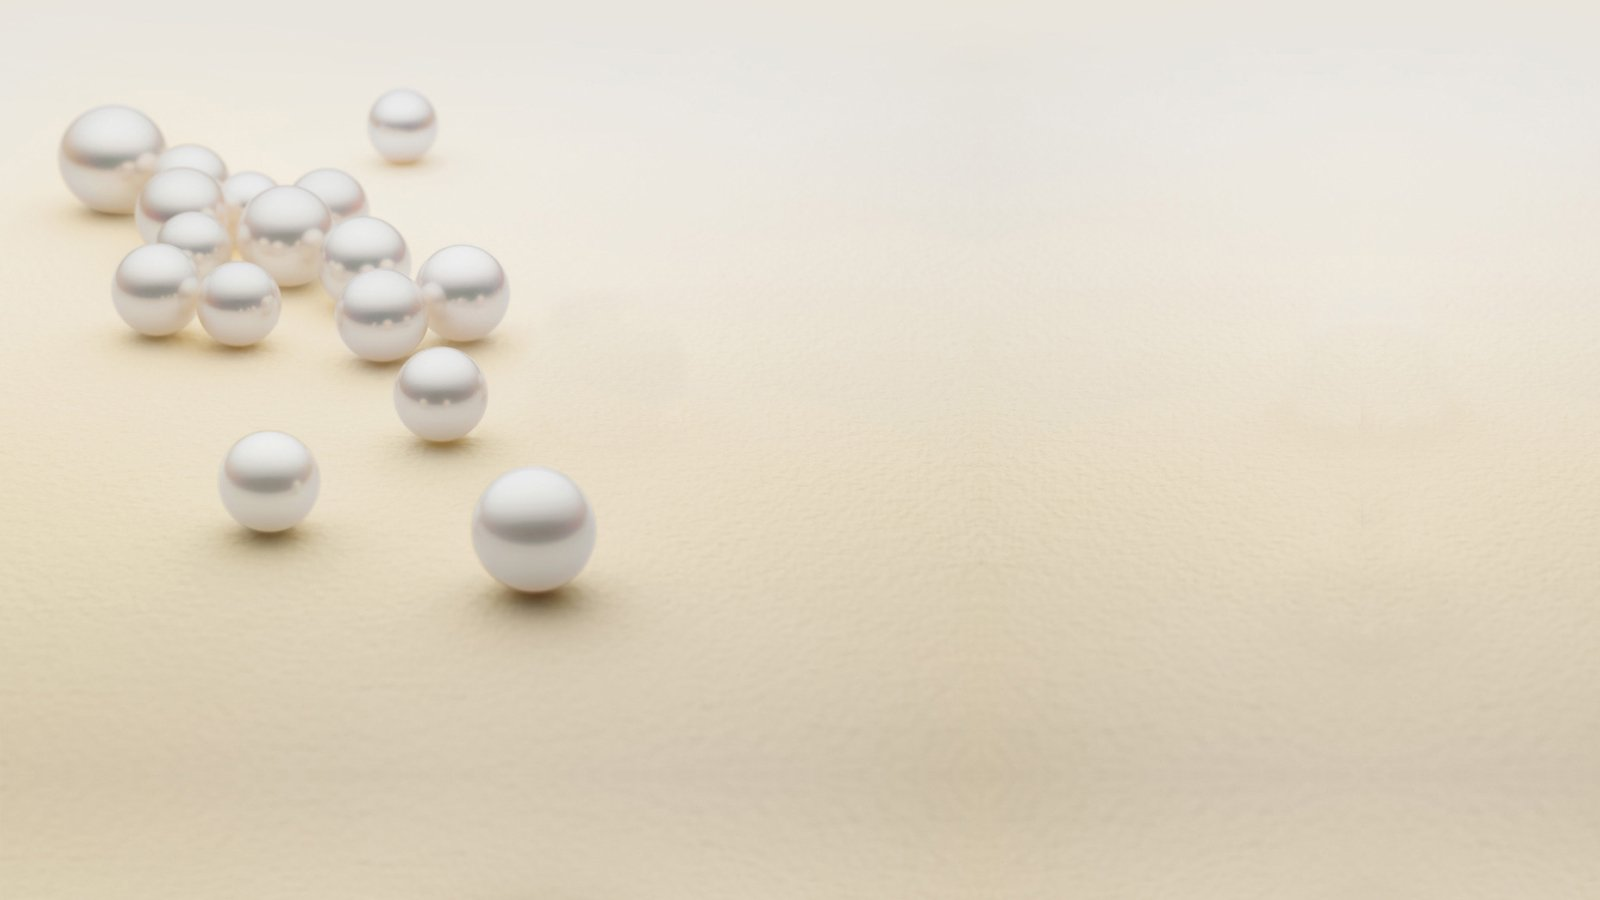 Pearls Wallpaper Background 1600x900